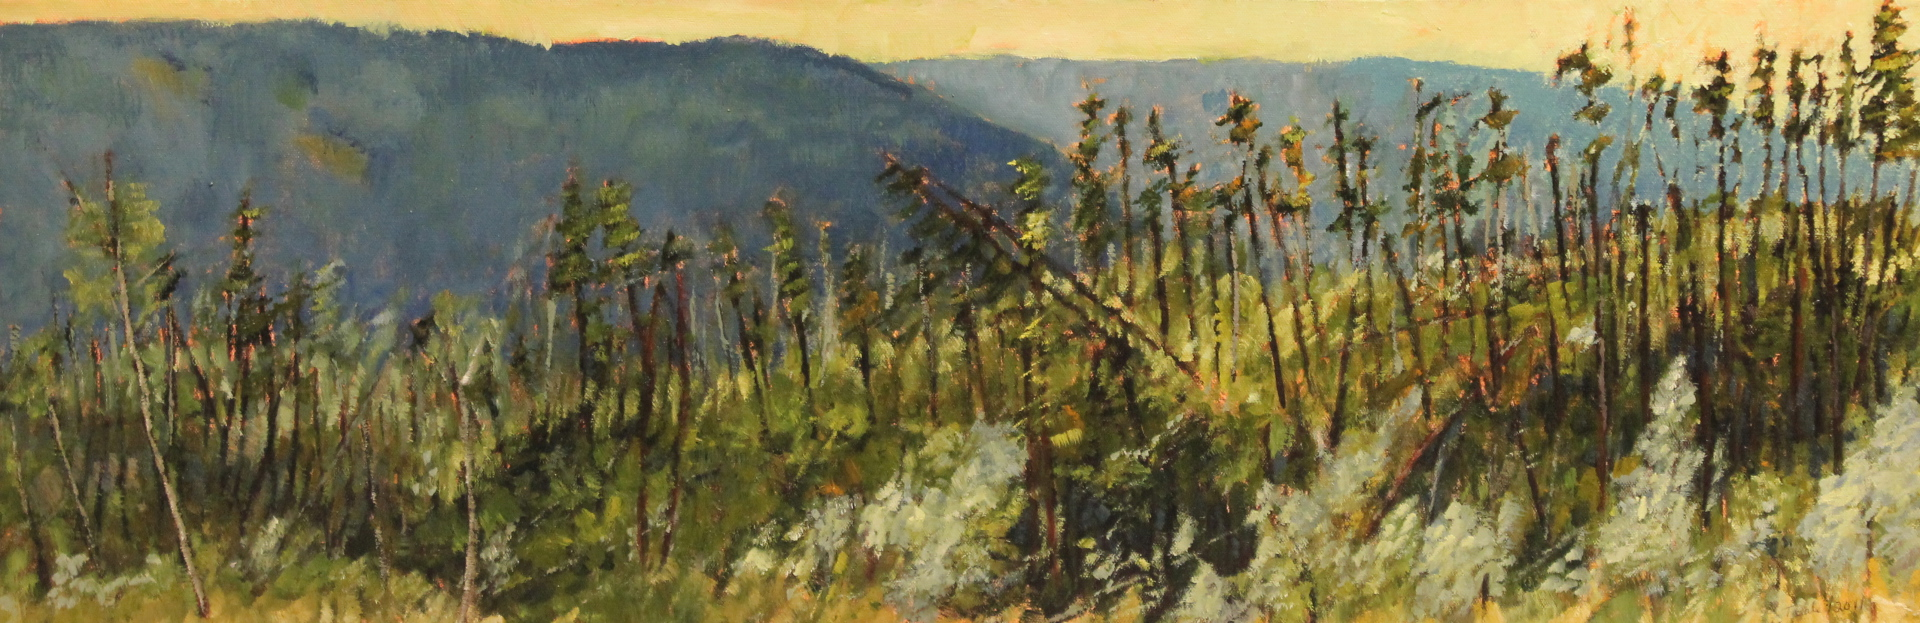 CHERRY RIDGE STUDY - 12 X 36 - OIL ON CANVAS - 2011